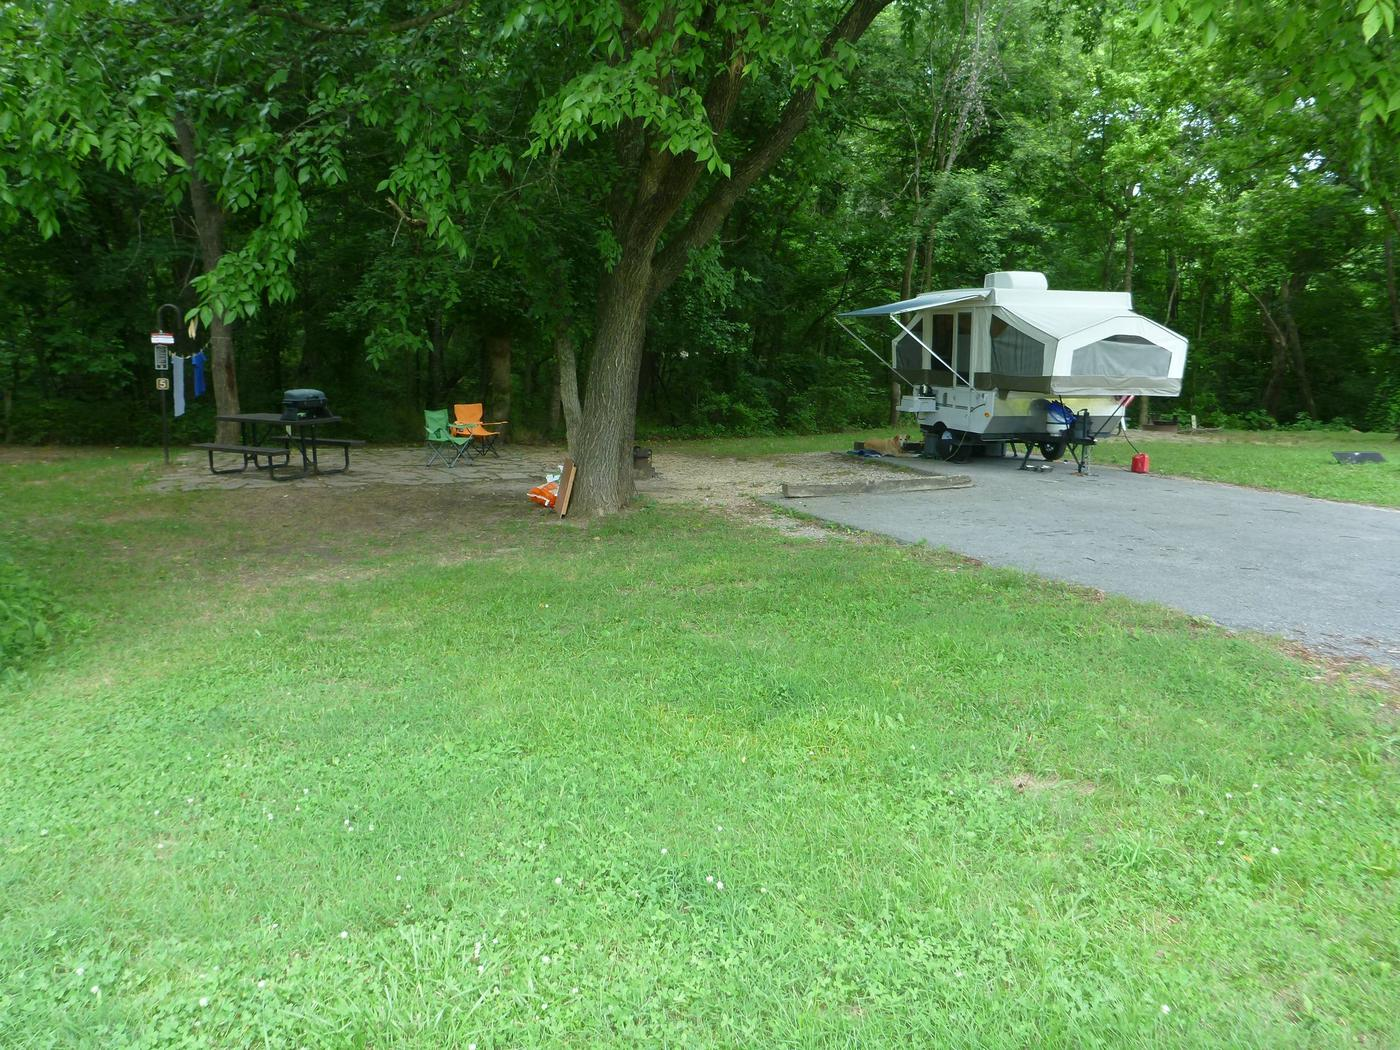 Tyler Bend Main Loop Ste #5-1Site #5, 54' back-in, no tent pad. Parking area is wide enough for RV and car to park side by side.